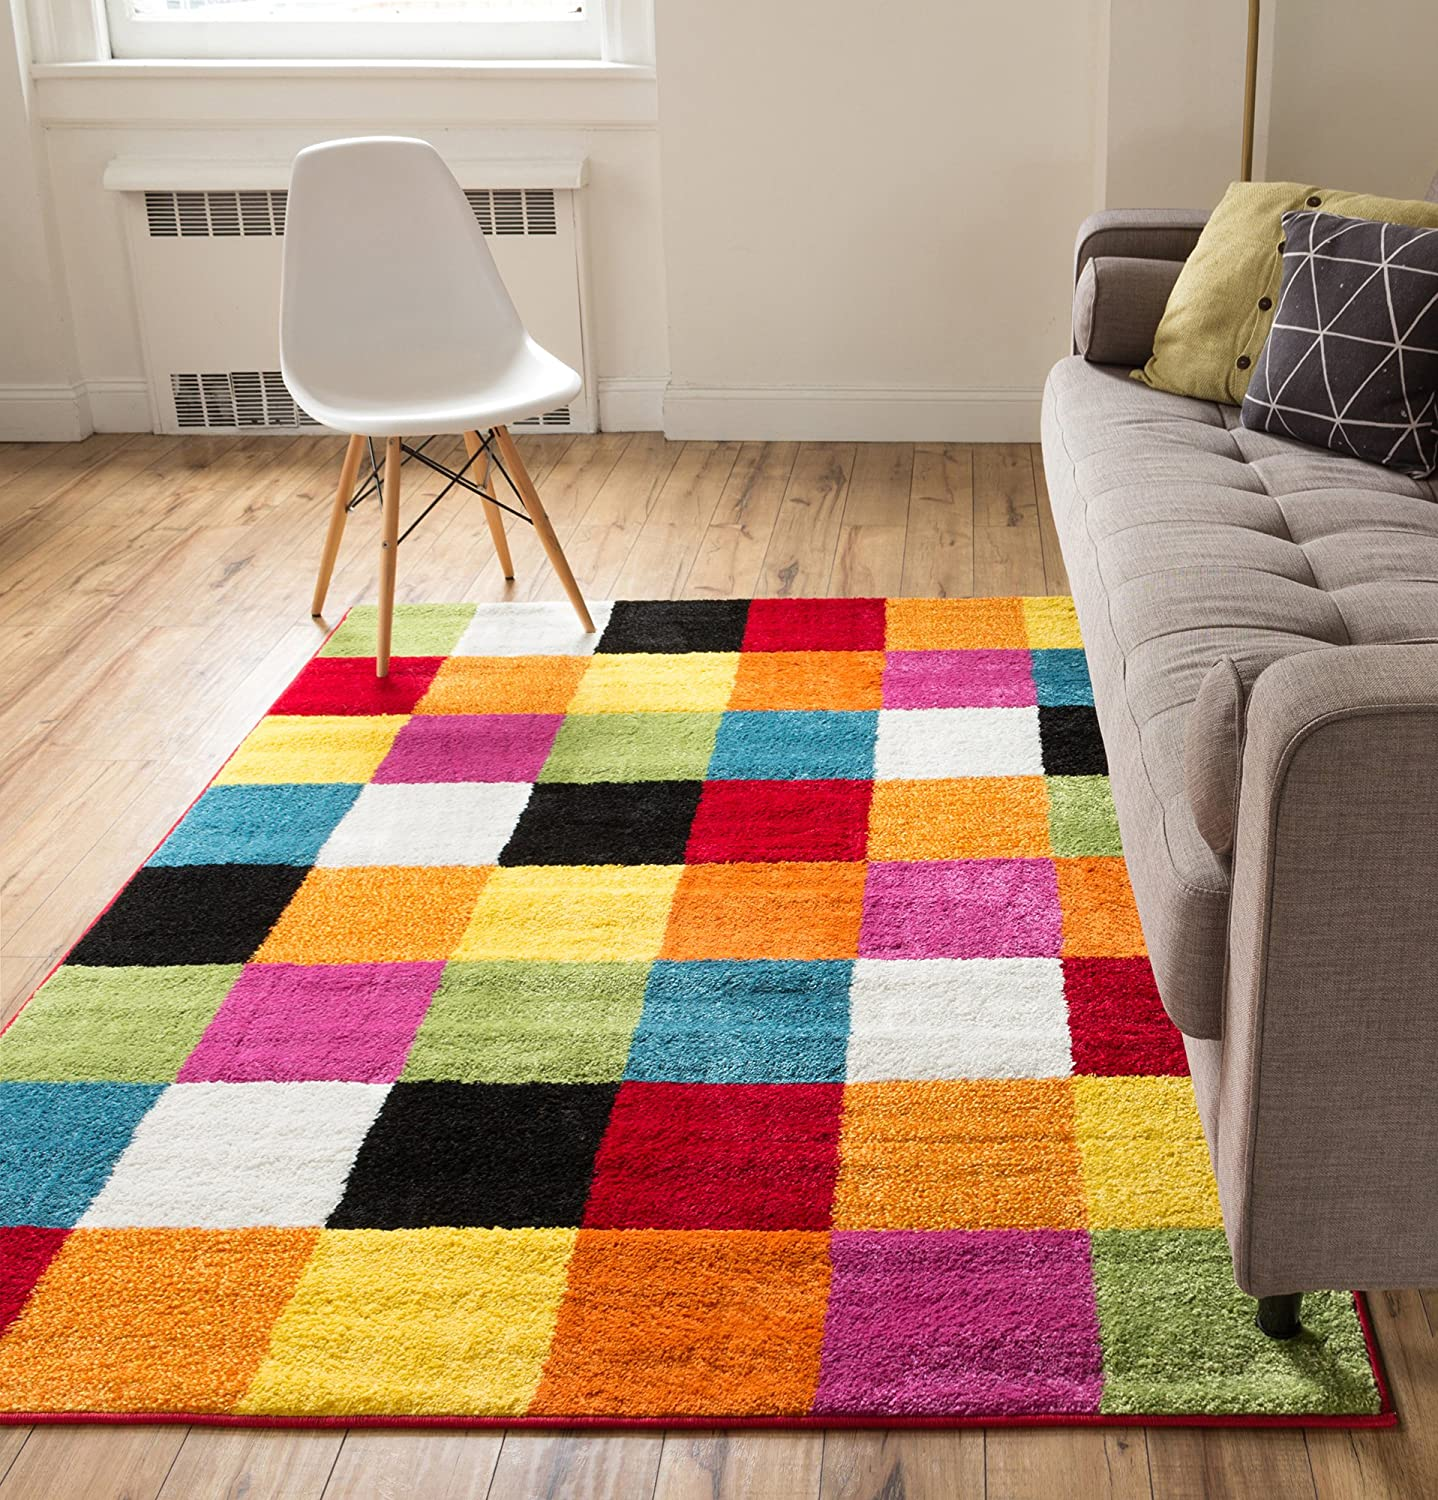 Captivating Amazon.com: Well Woven Squares Soft Multi Geometric Accent Area Rug, 5u0027X7u0027:  Kitchen U0026 Dining